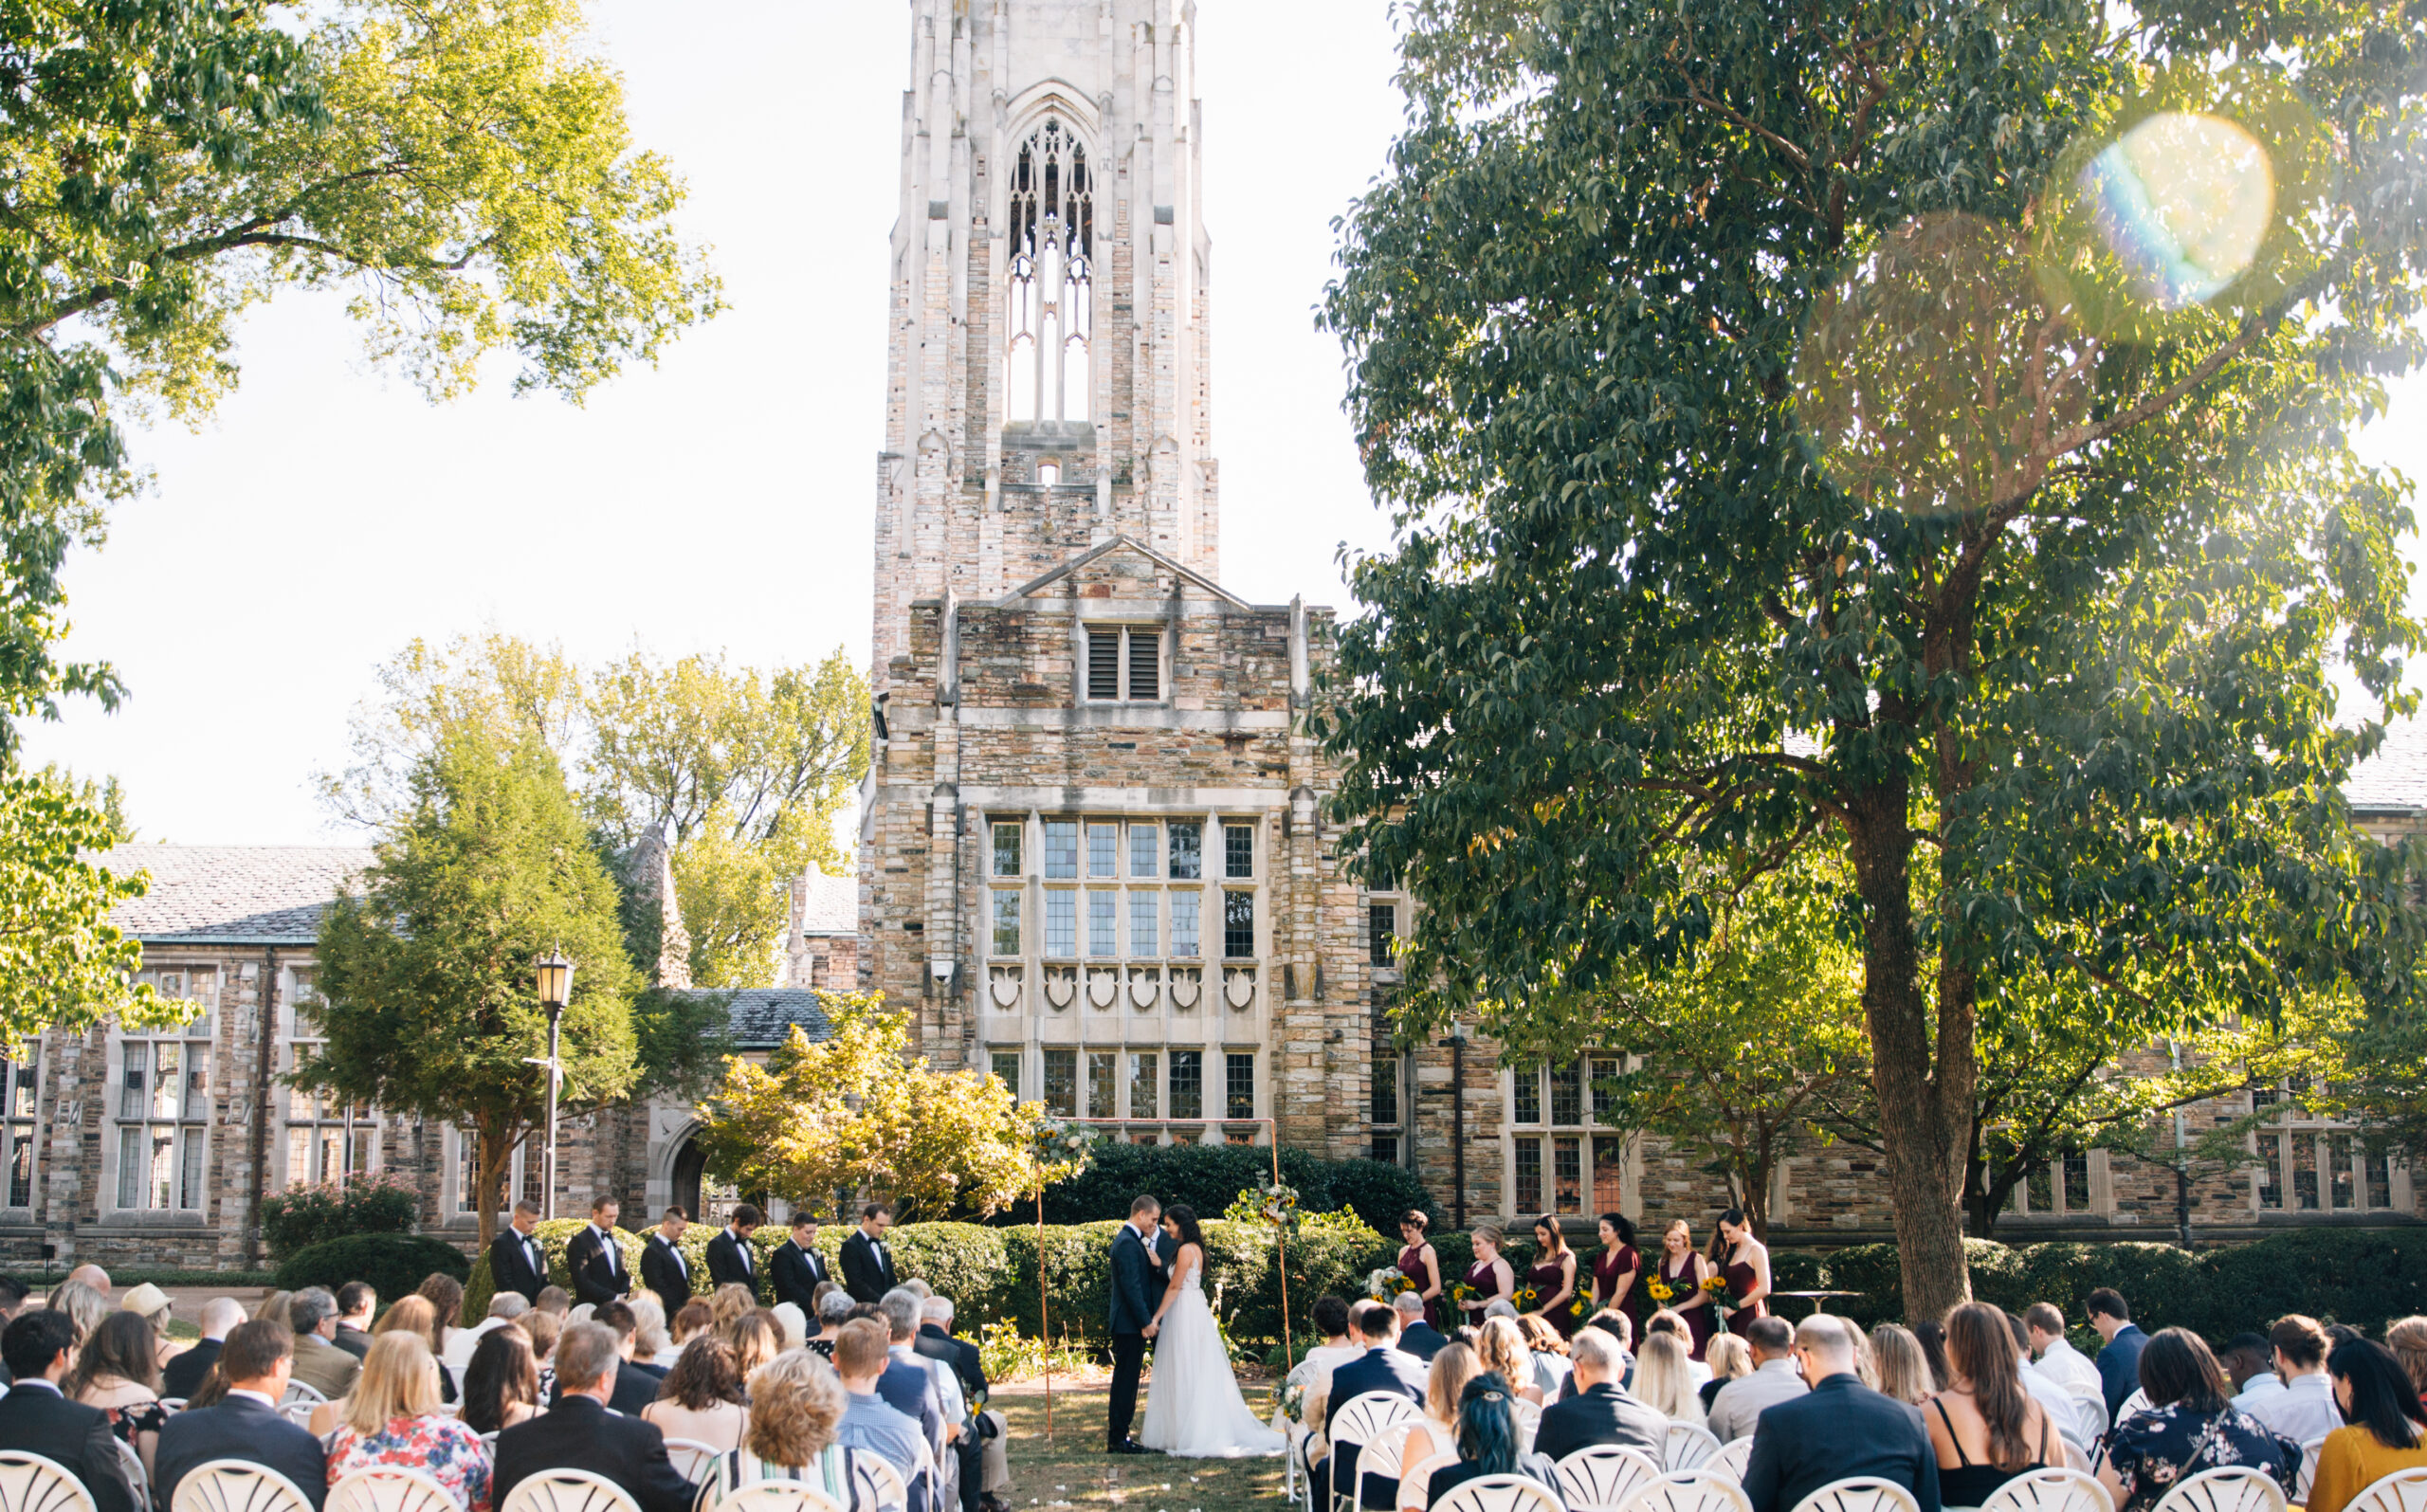 Garden wedding set in the labyrinth overlooking the historic bell tower